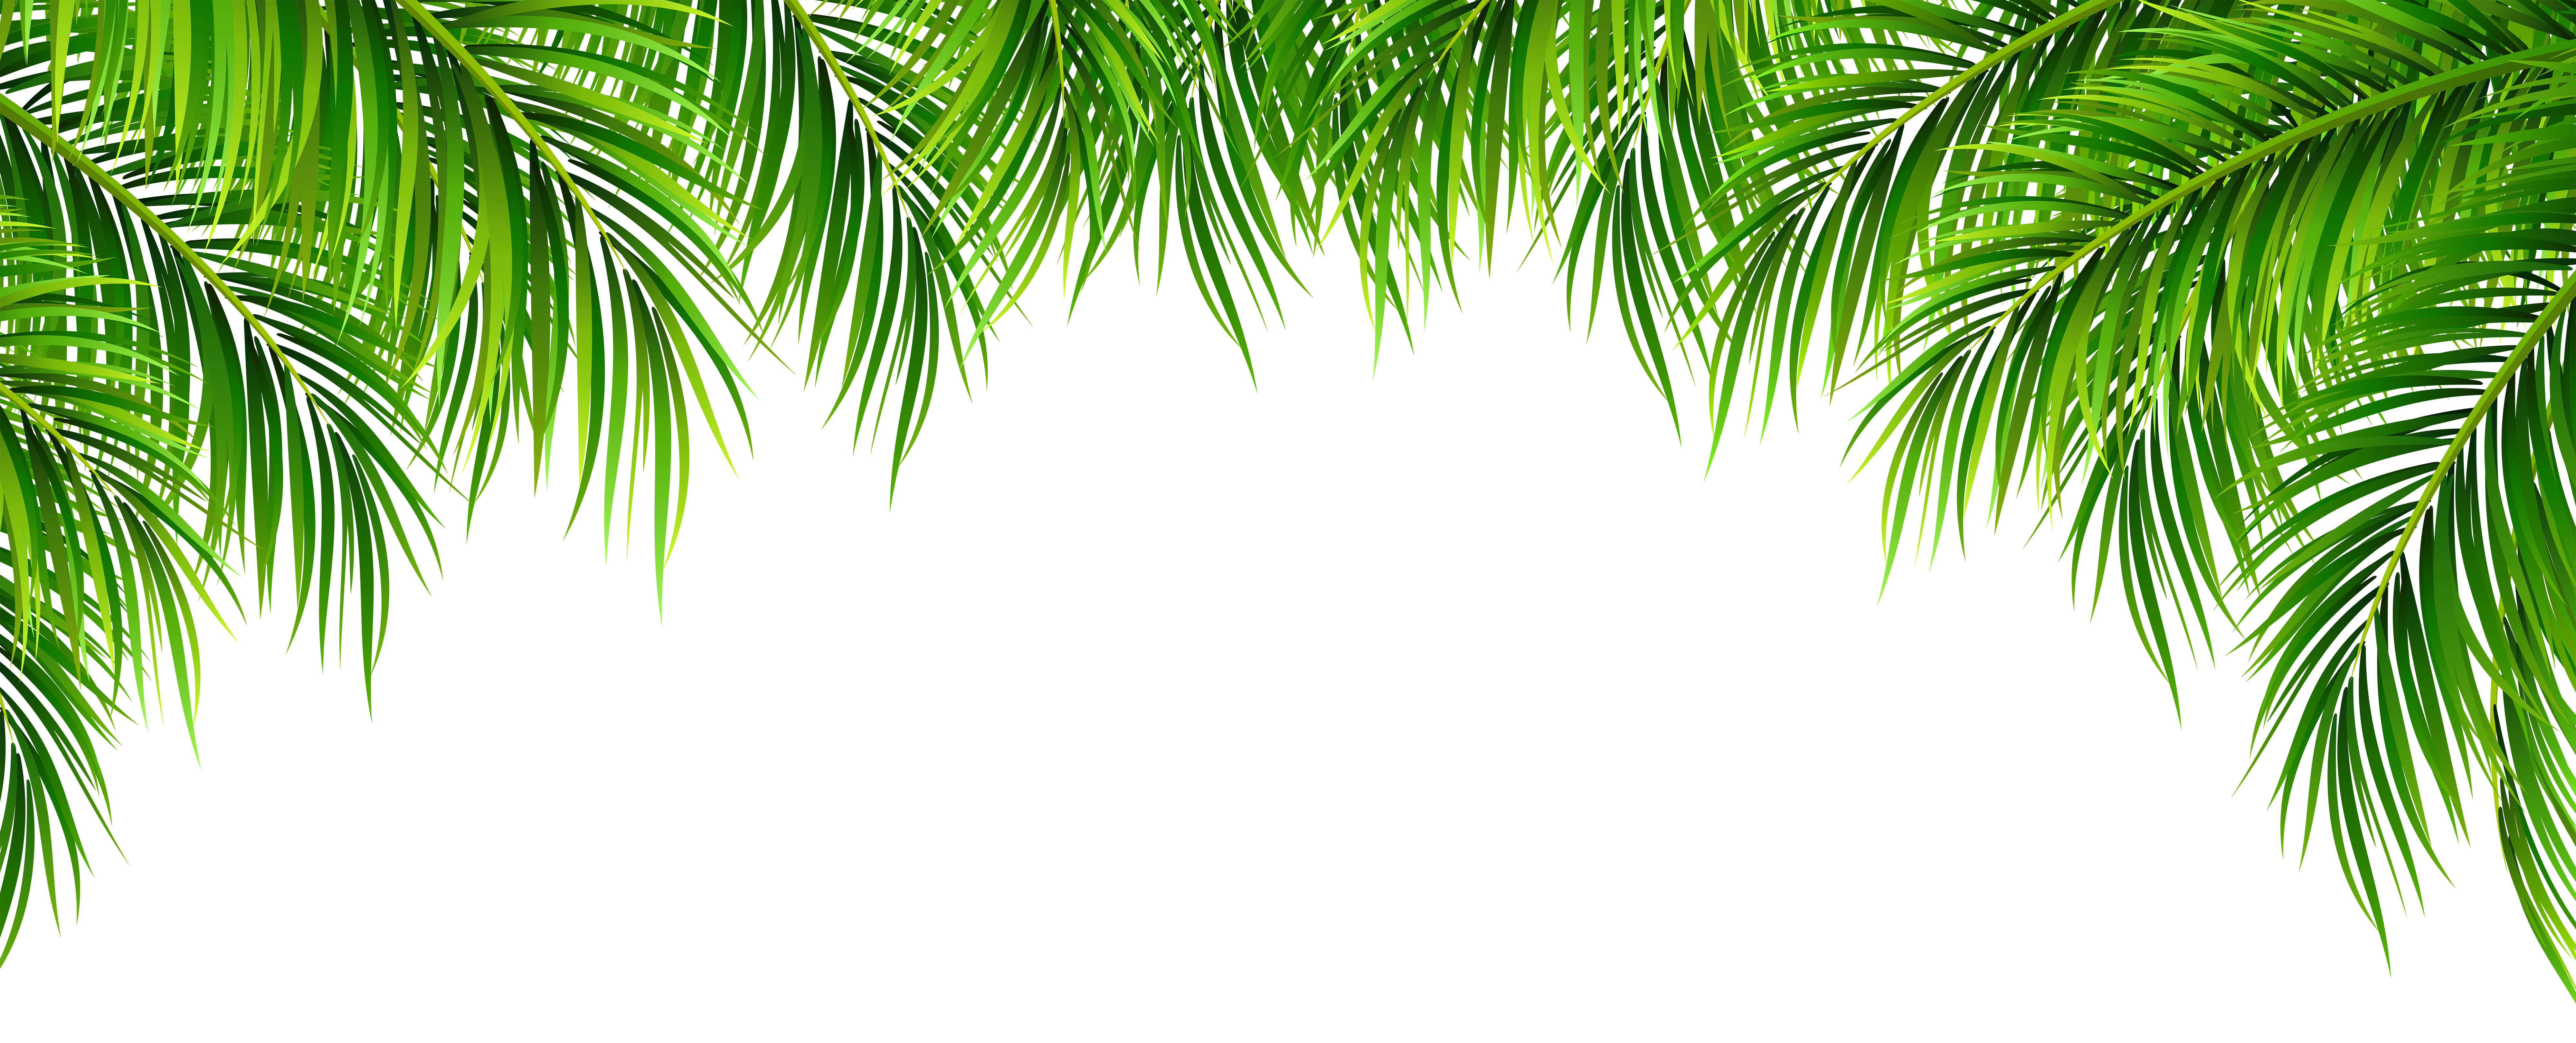 Palm leaf border clipart image black and white Pin by Bassey Ekpenyong on LEAVES in 2019 | Leaves, Clip art ... image black and white